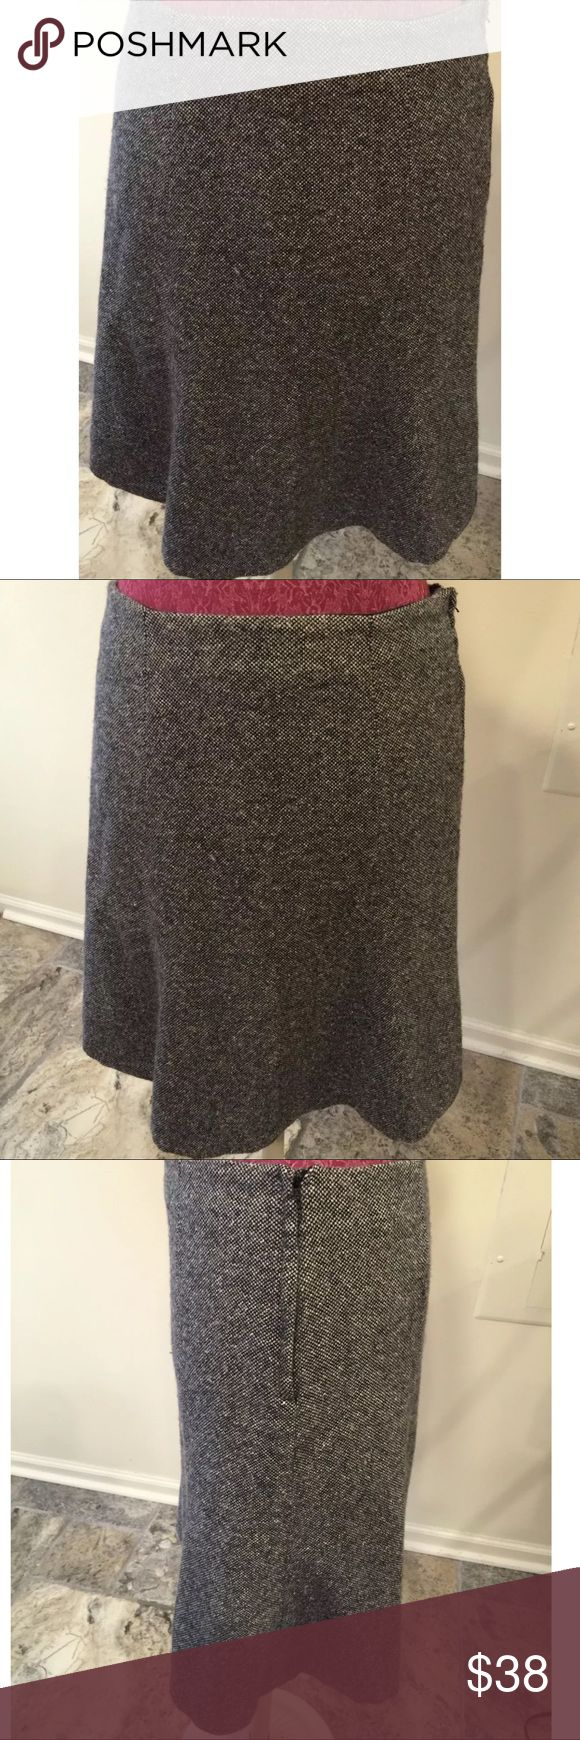 Gap Black Trumpet 54% Wool Skirt Size 8 Gap Size ~ 8 Shell ~ 54% wool, 17% polyester, 15% nylon, 12% silk, 2% other fibers Lining ~ 100% acetate Waist ~ 15 Hips ~ 20 Length ~ 22 Back zipper Black GAP Skirts A-Line or Full